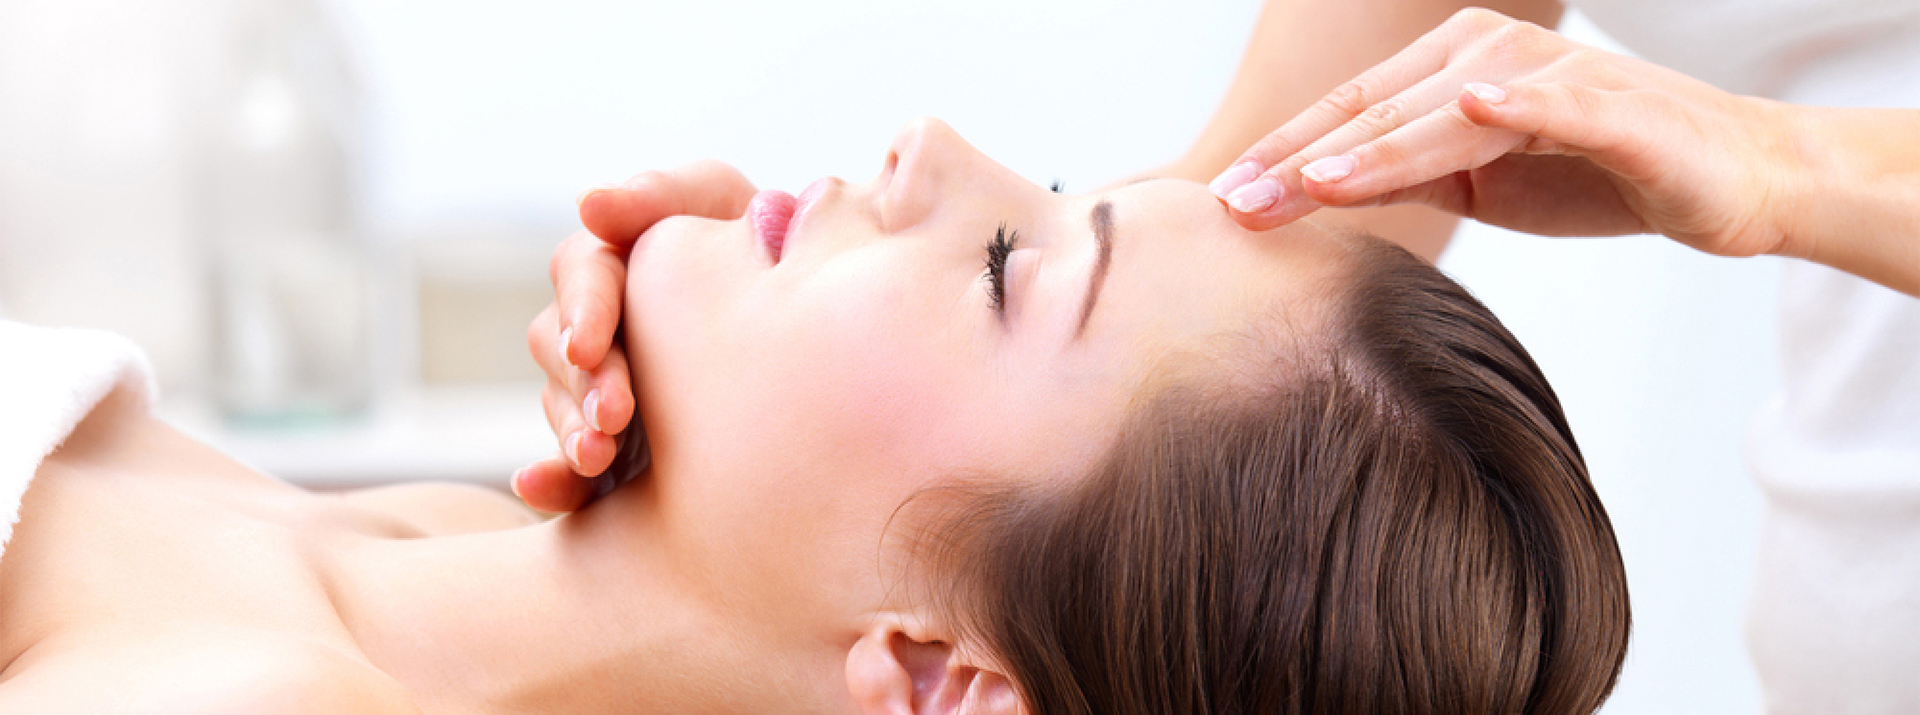 body massage in Dadar